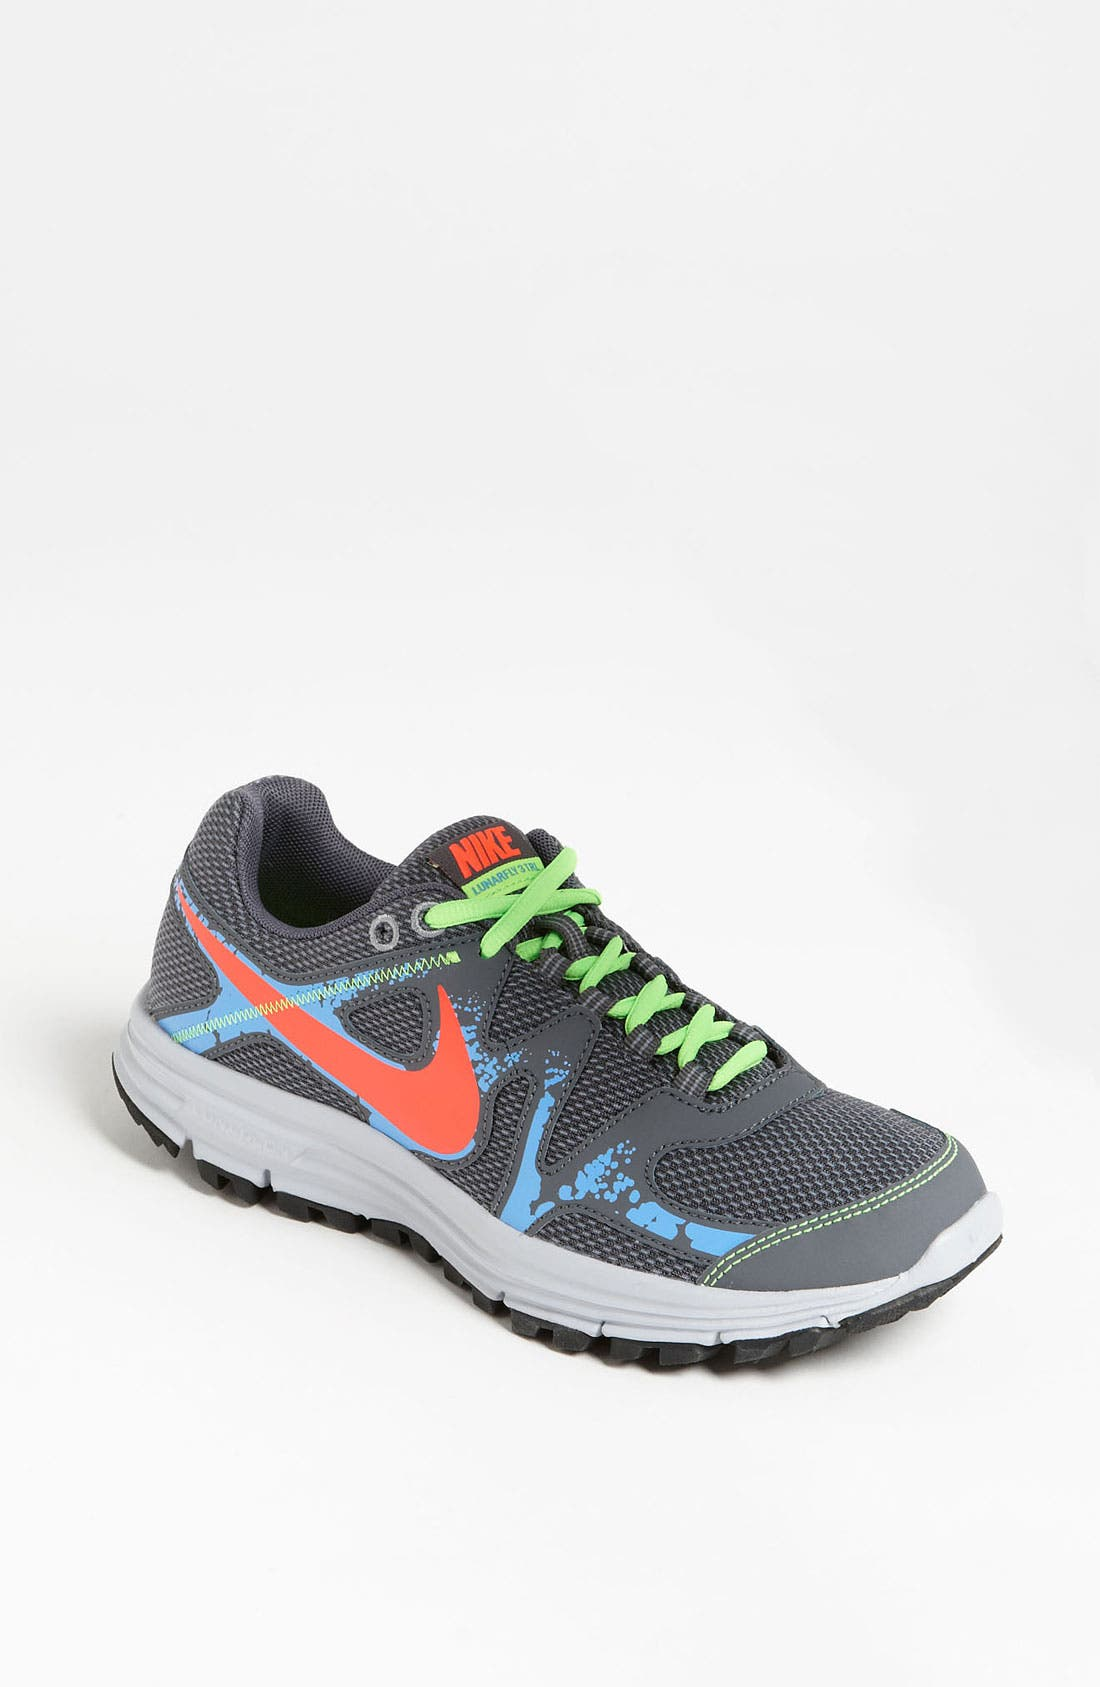 Alternate Image 1 Selected - Nike 'Lunarfly+ 3 Trail' Running Shoe (Women)